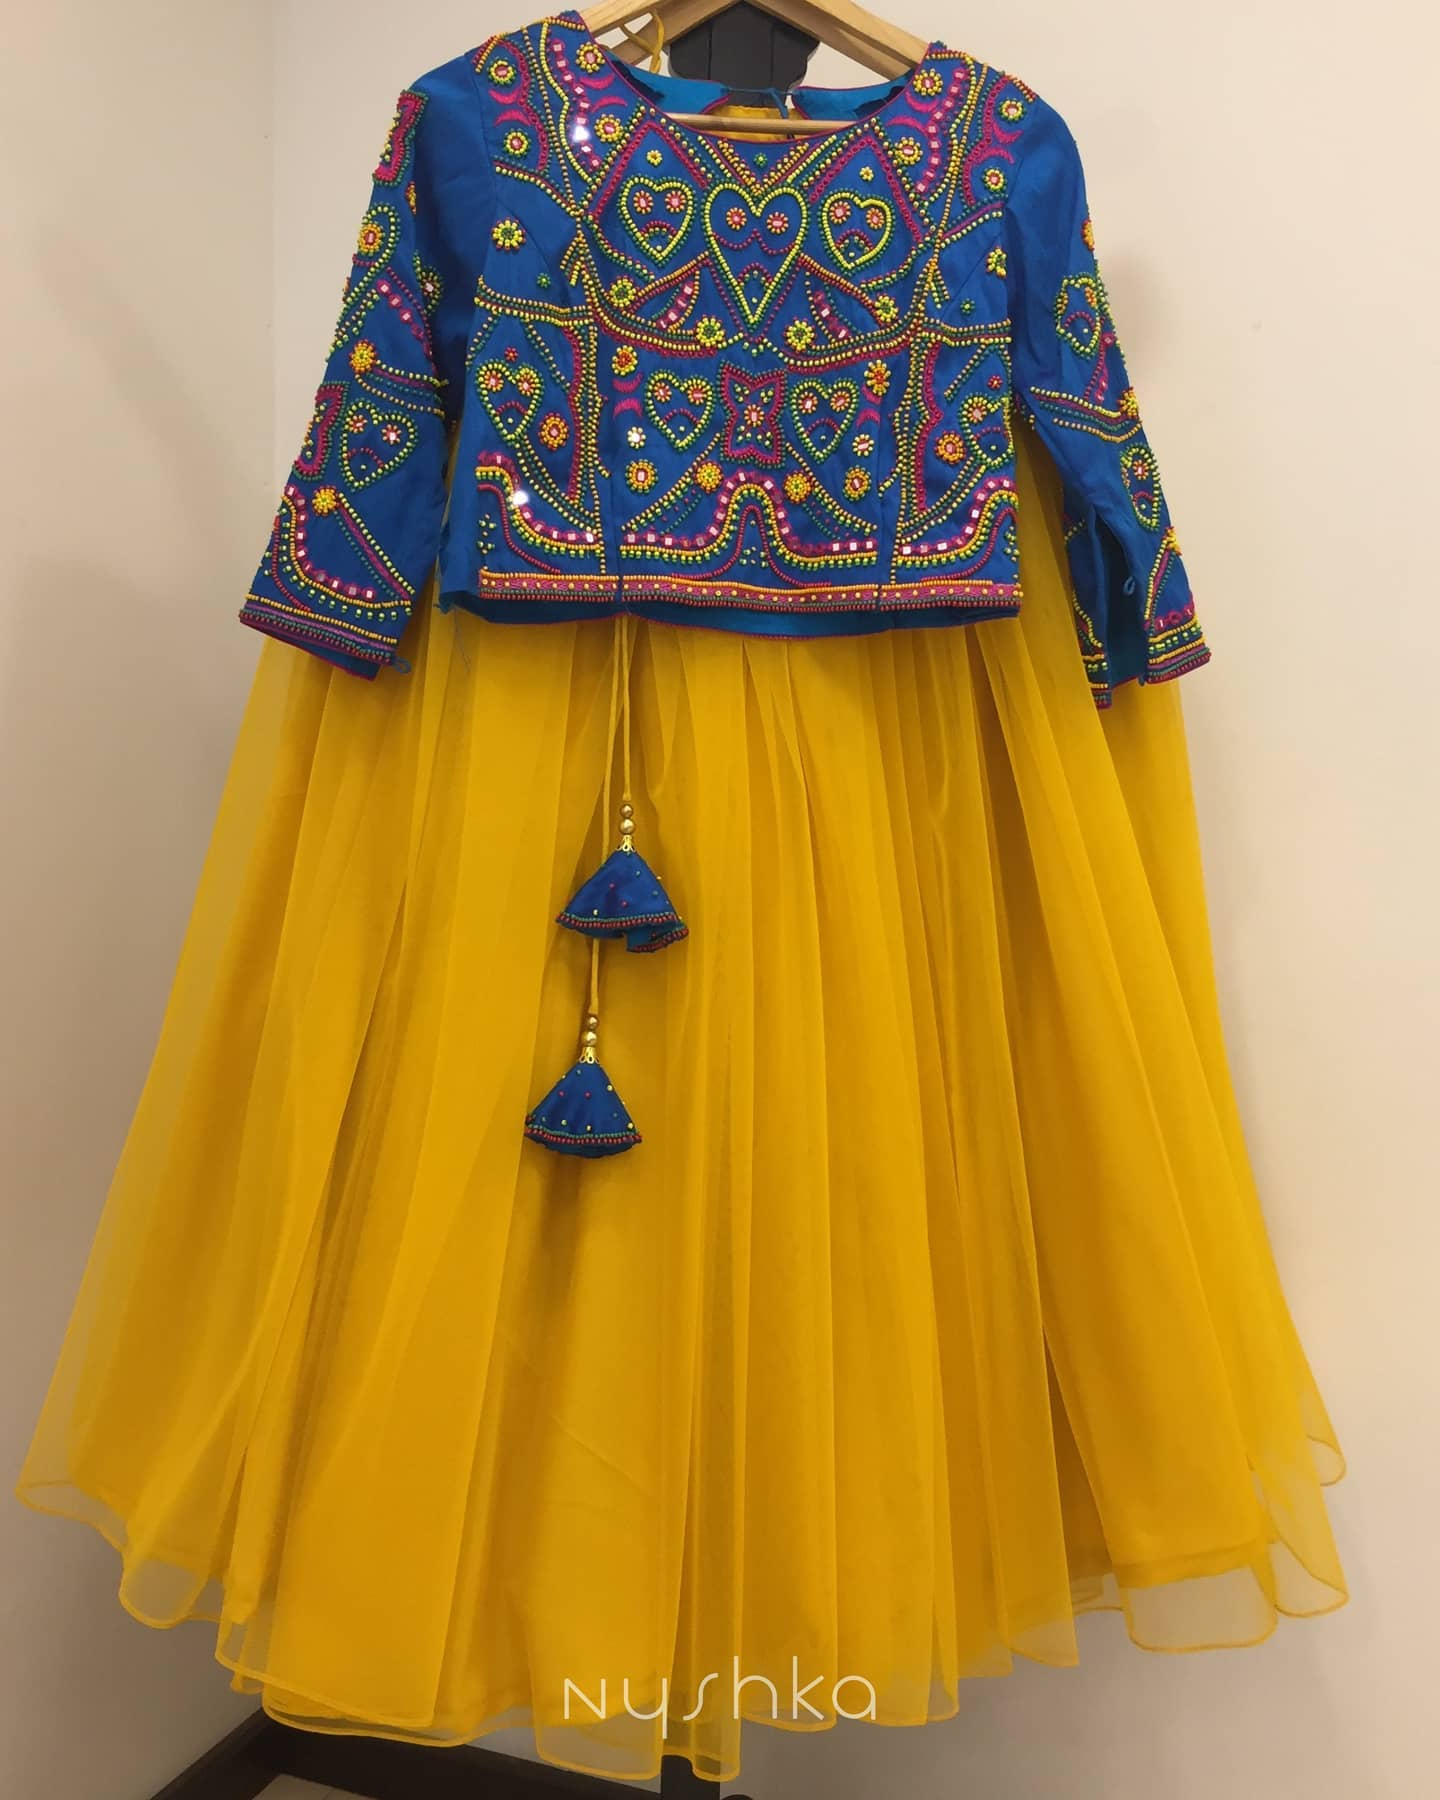 Shine your brightest in this vibrant yellow lehenga. Beautiful yellow net skirt and blue crop top with hand embroidery work.  2021-09-15